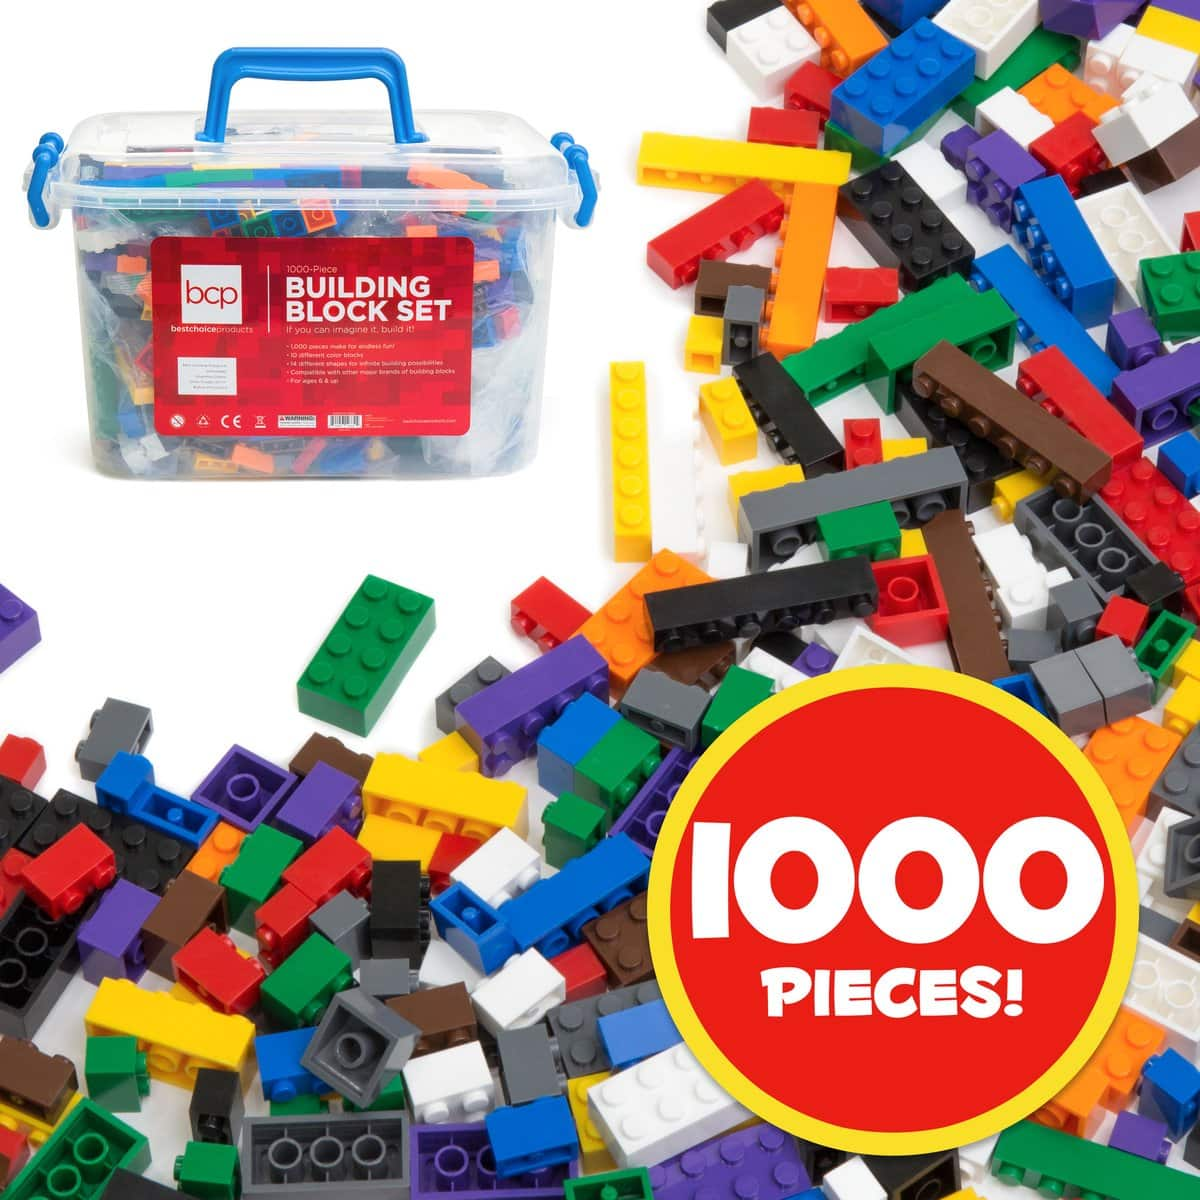 1000-Piece Kids' Building Blocks w/ Container $20 + Free Shipping